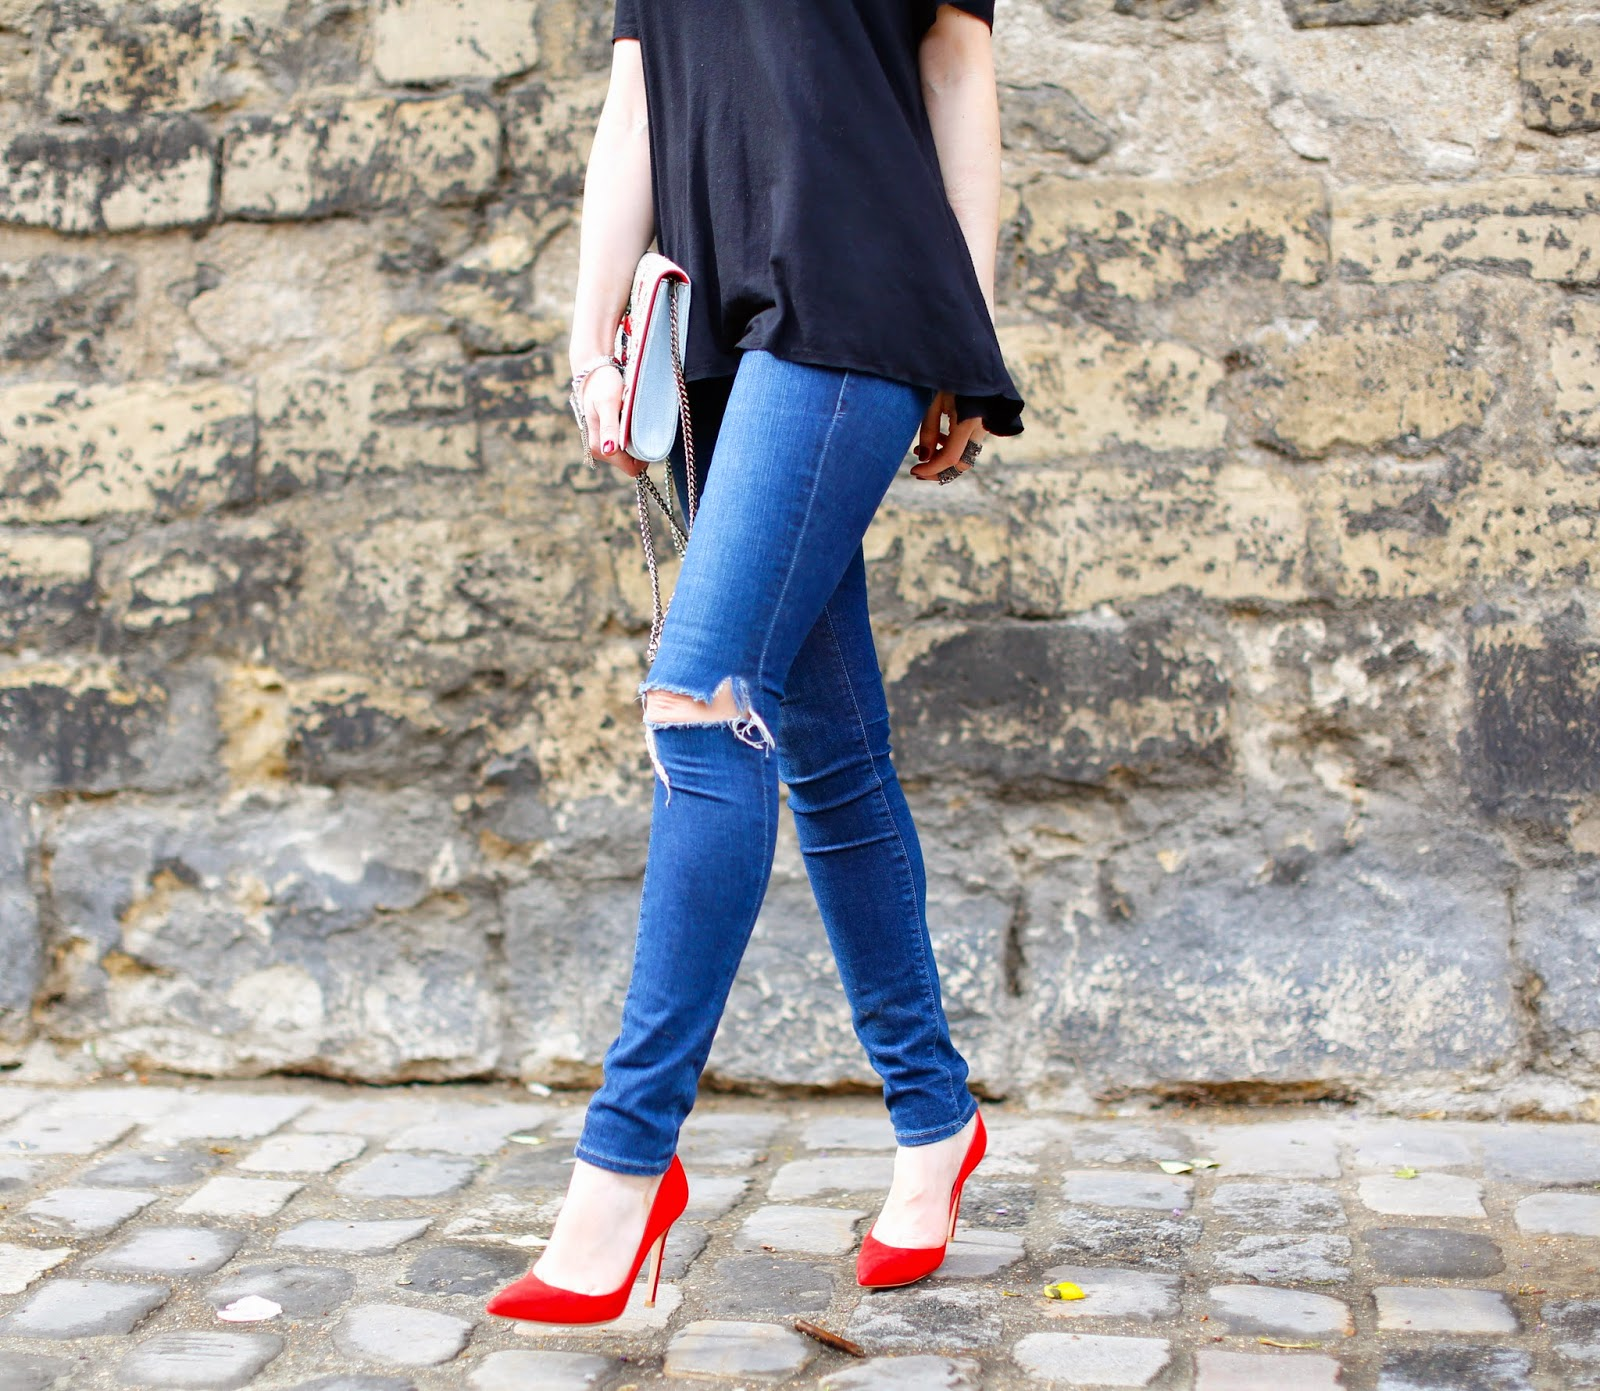 gianvito rossi, joah brown, frame denim, streetstyle, pardon my obsession, fashion blogger